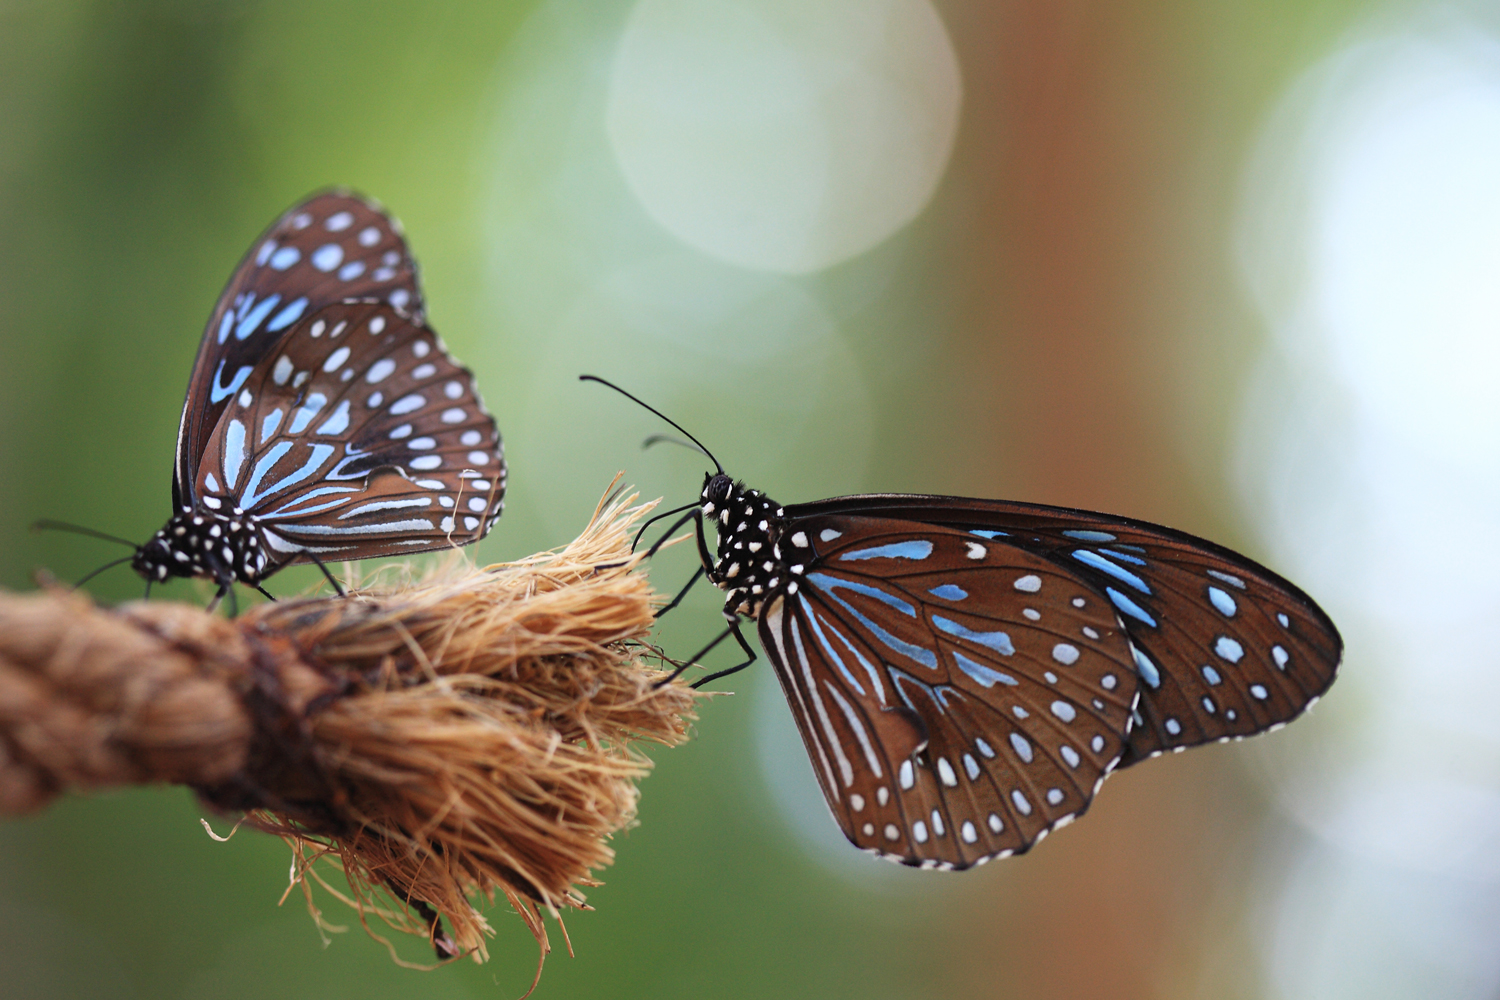 The Chequered Blue Butterfly